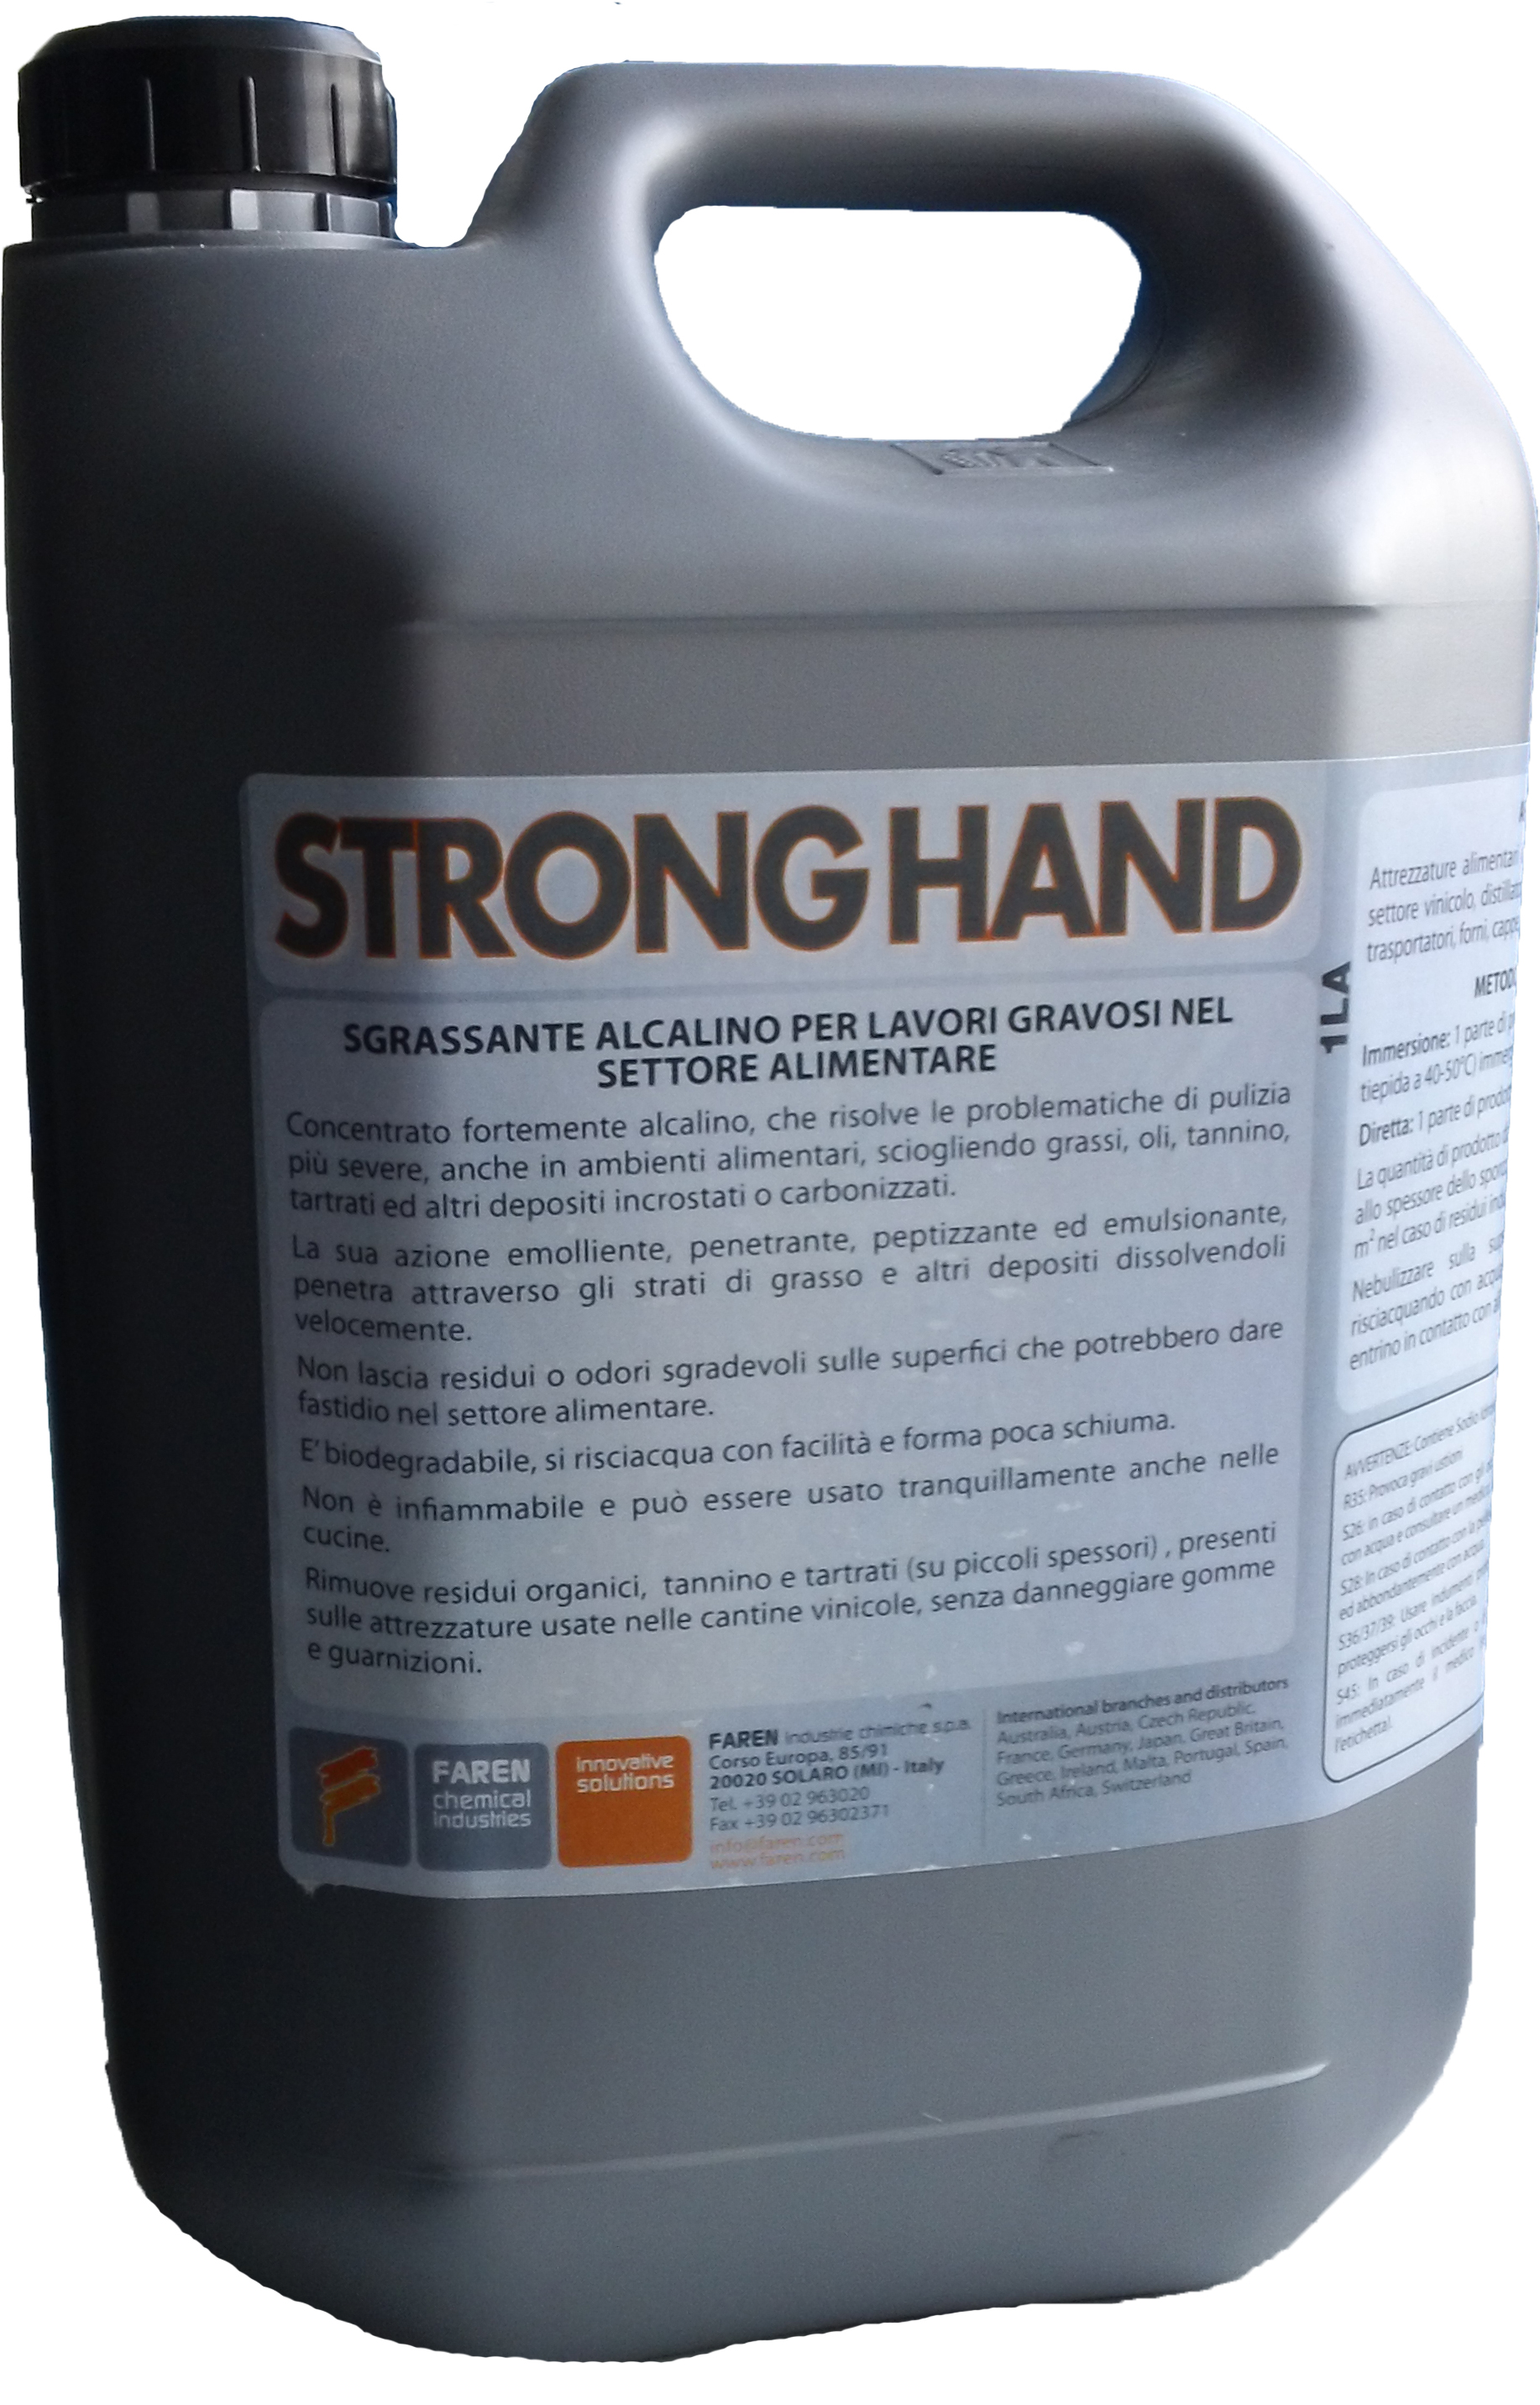 STRONG HAND - 5 kg